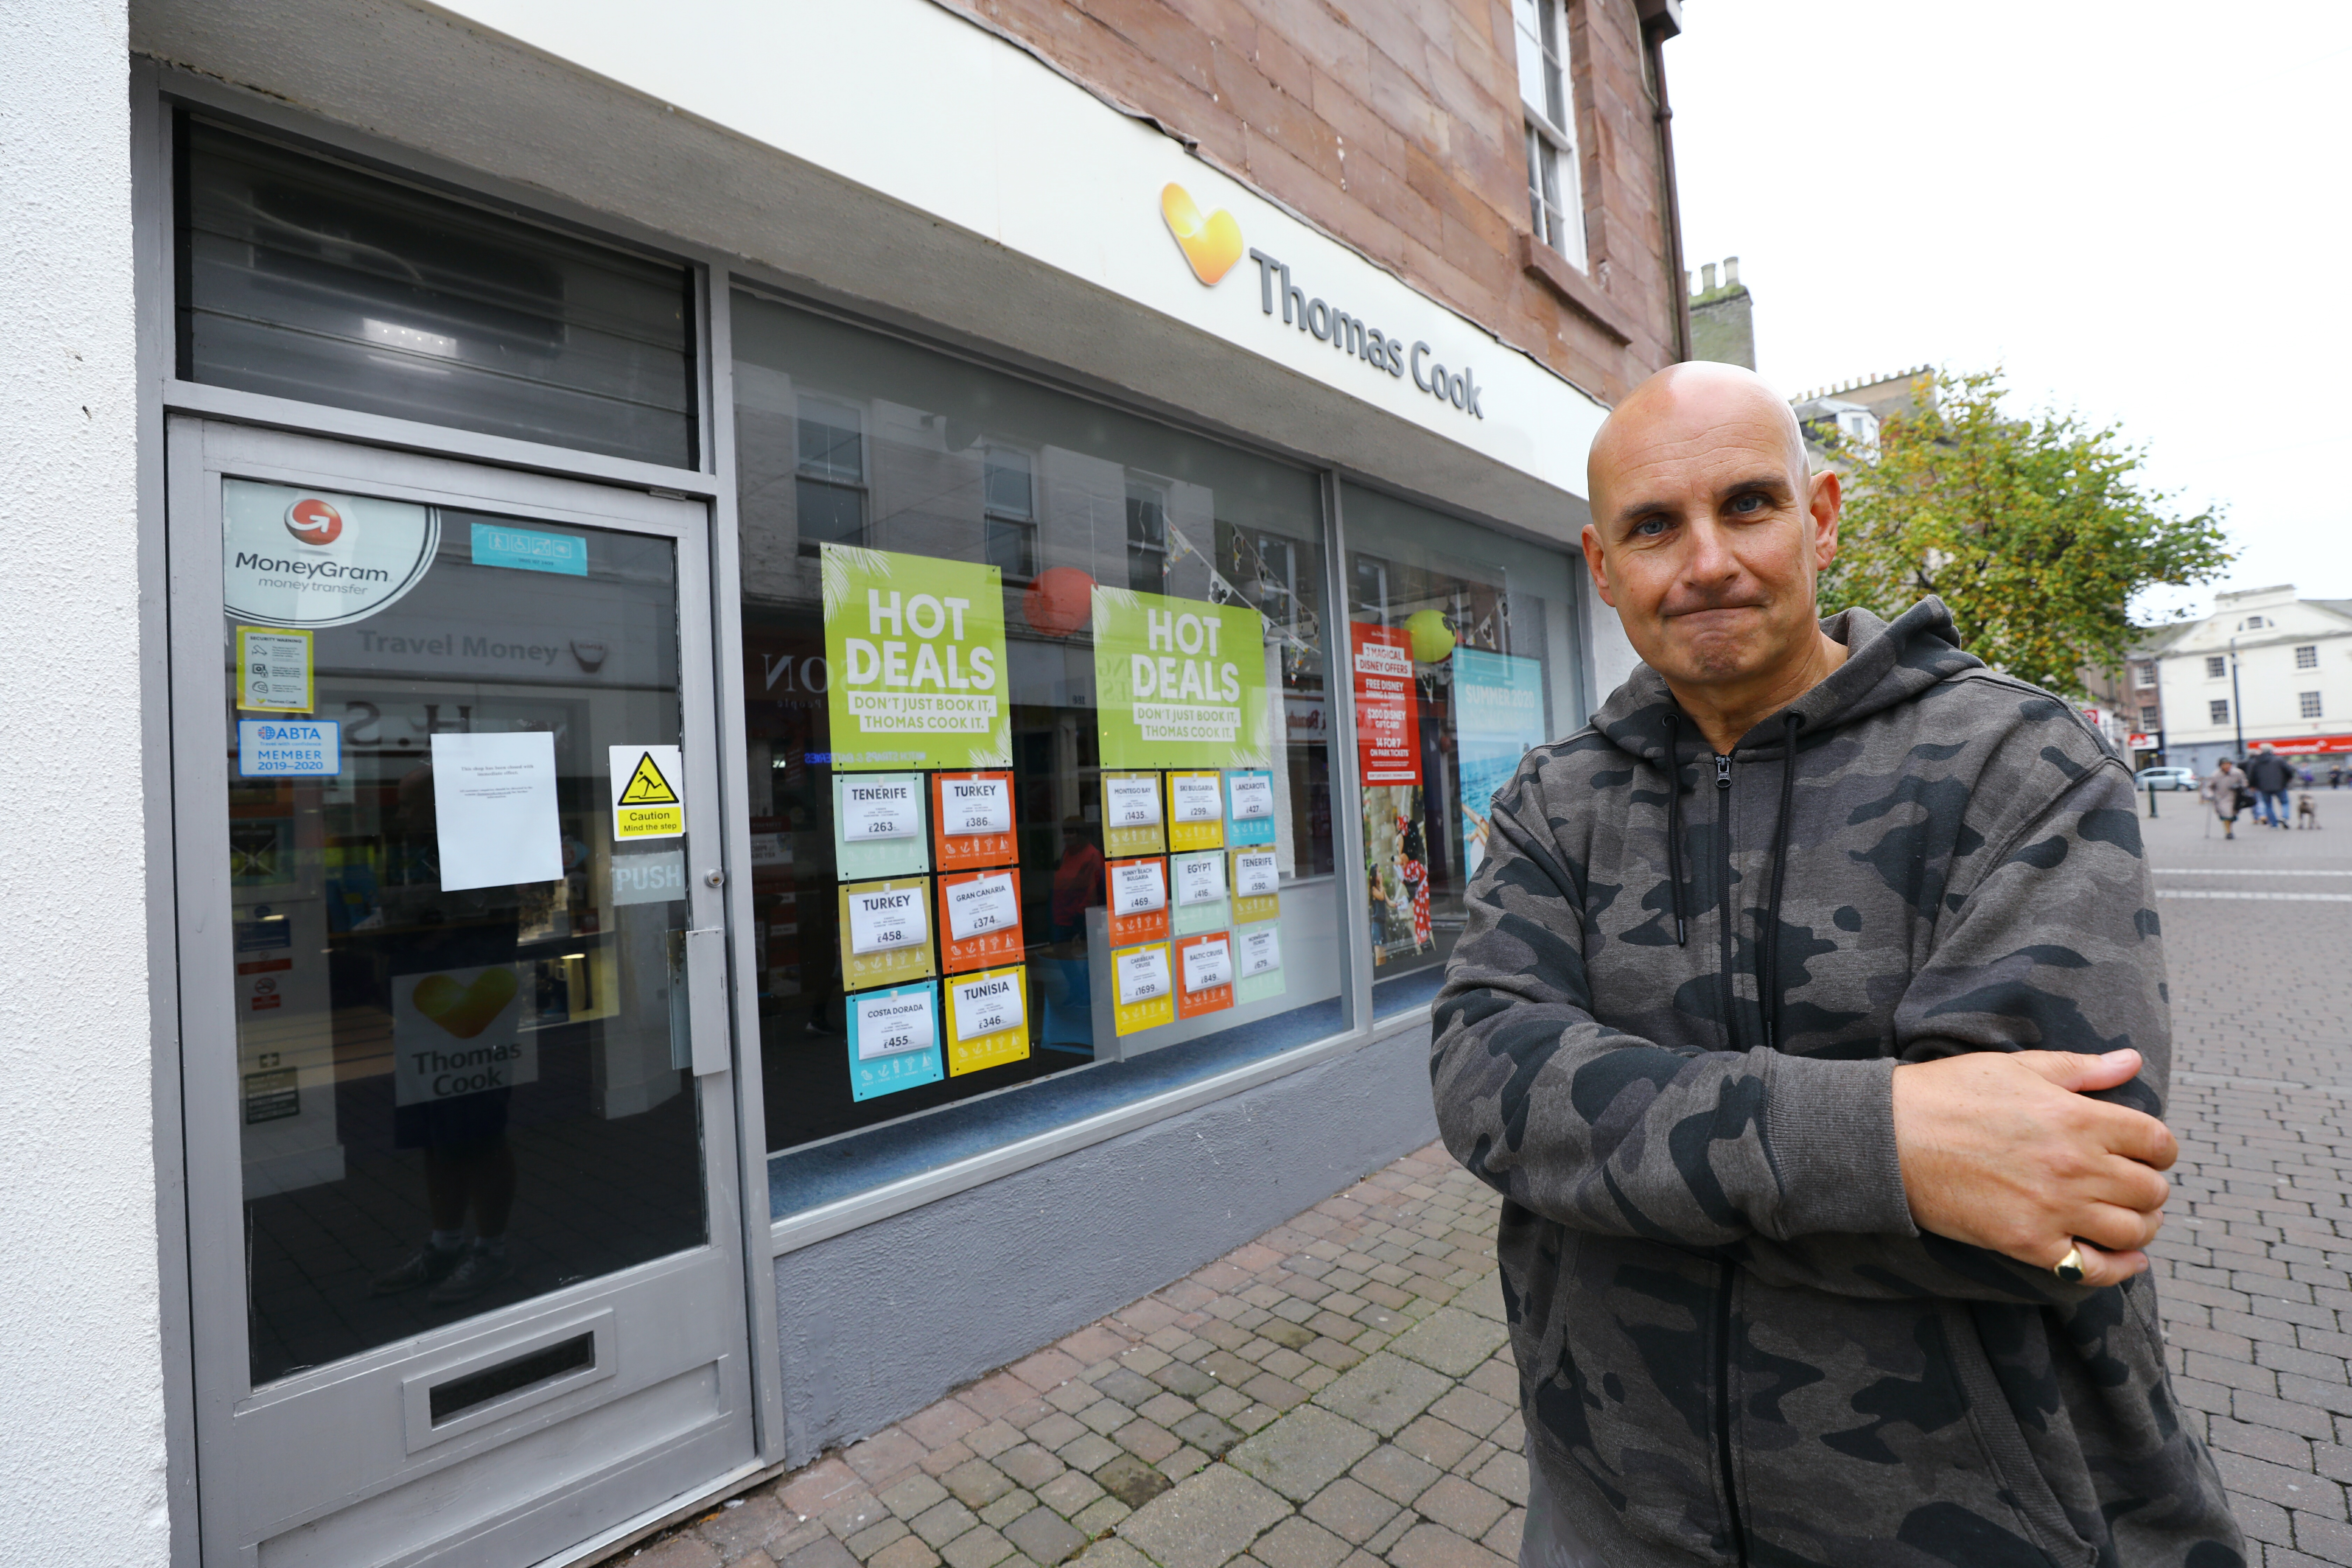 Stuart Betty, former manager of Thomas Cook in Arbroath.